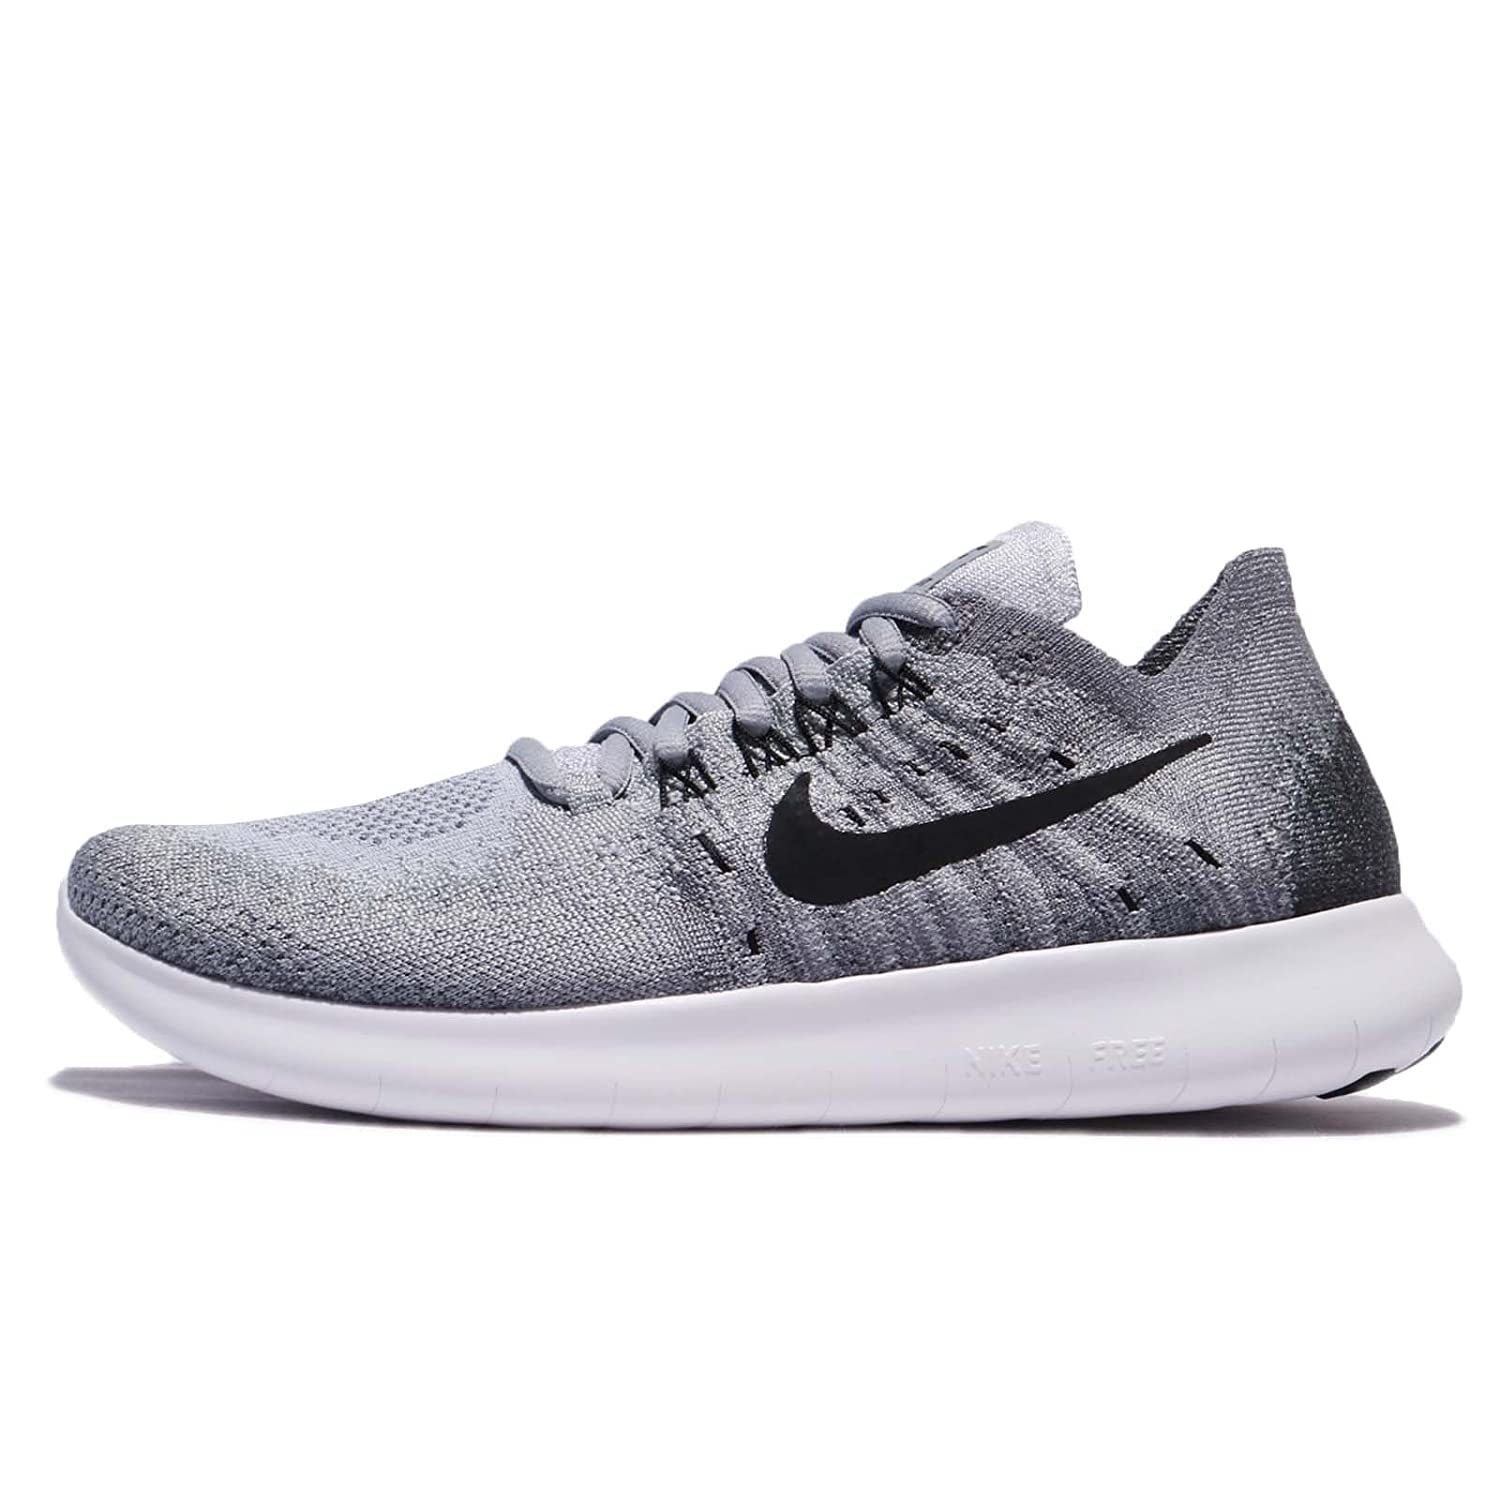 newest fe5a7 c50a0 Nike Women's Free RN Flyknit 2017 Wolf Grey/Black/Anthracite Running Shoe